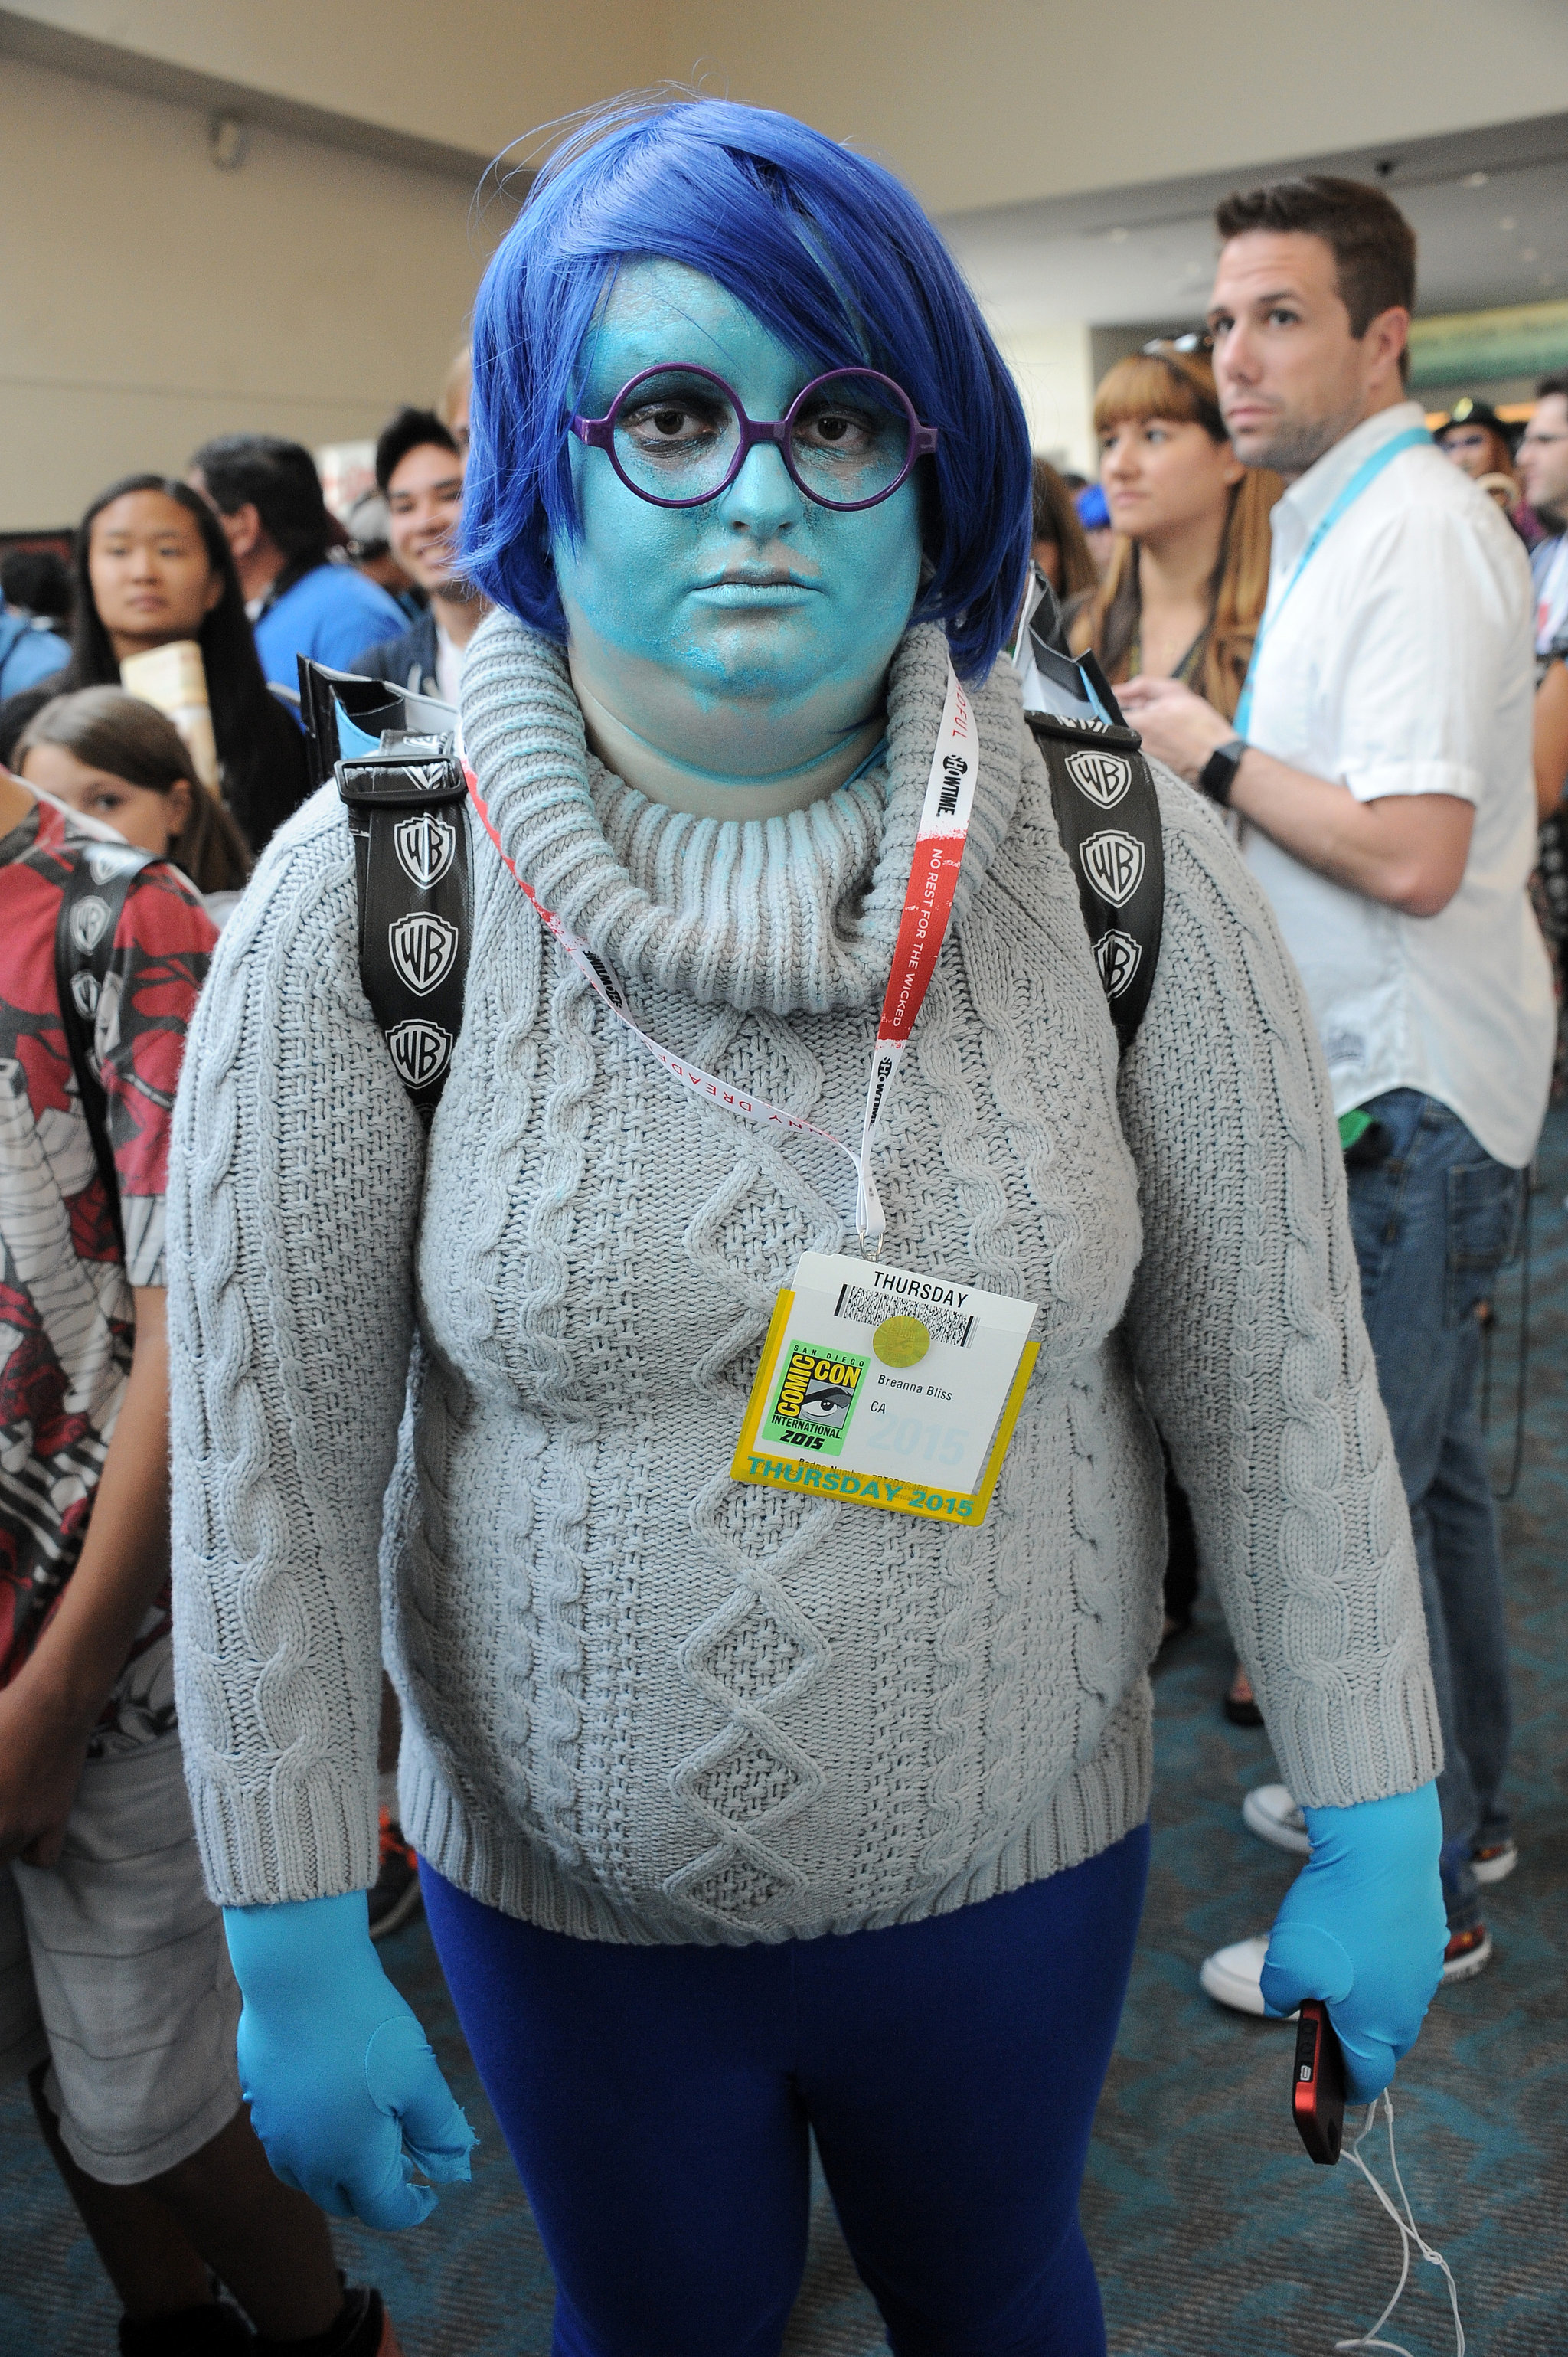 Blue hair characters famous